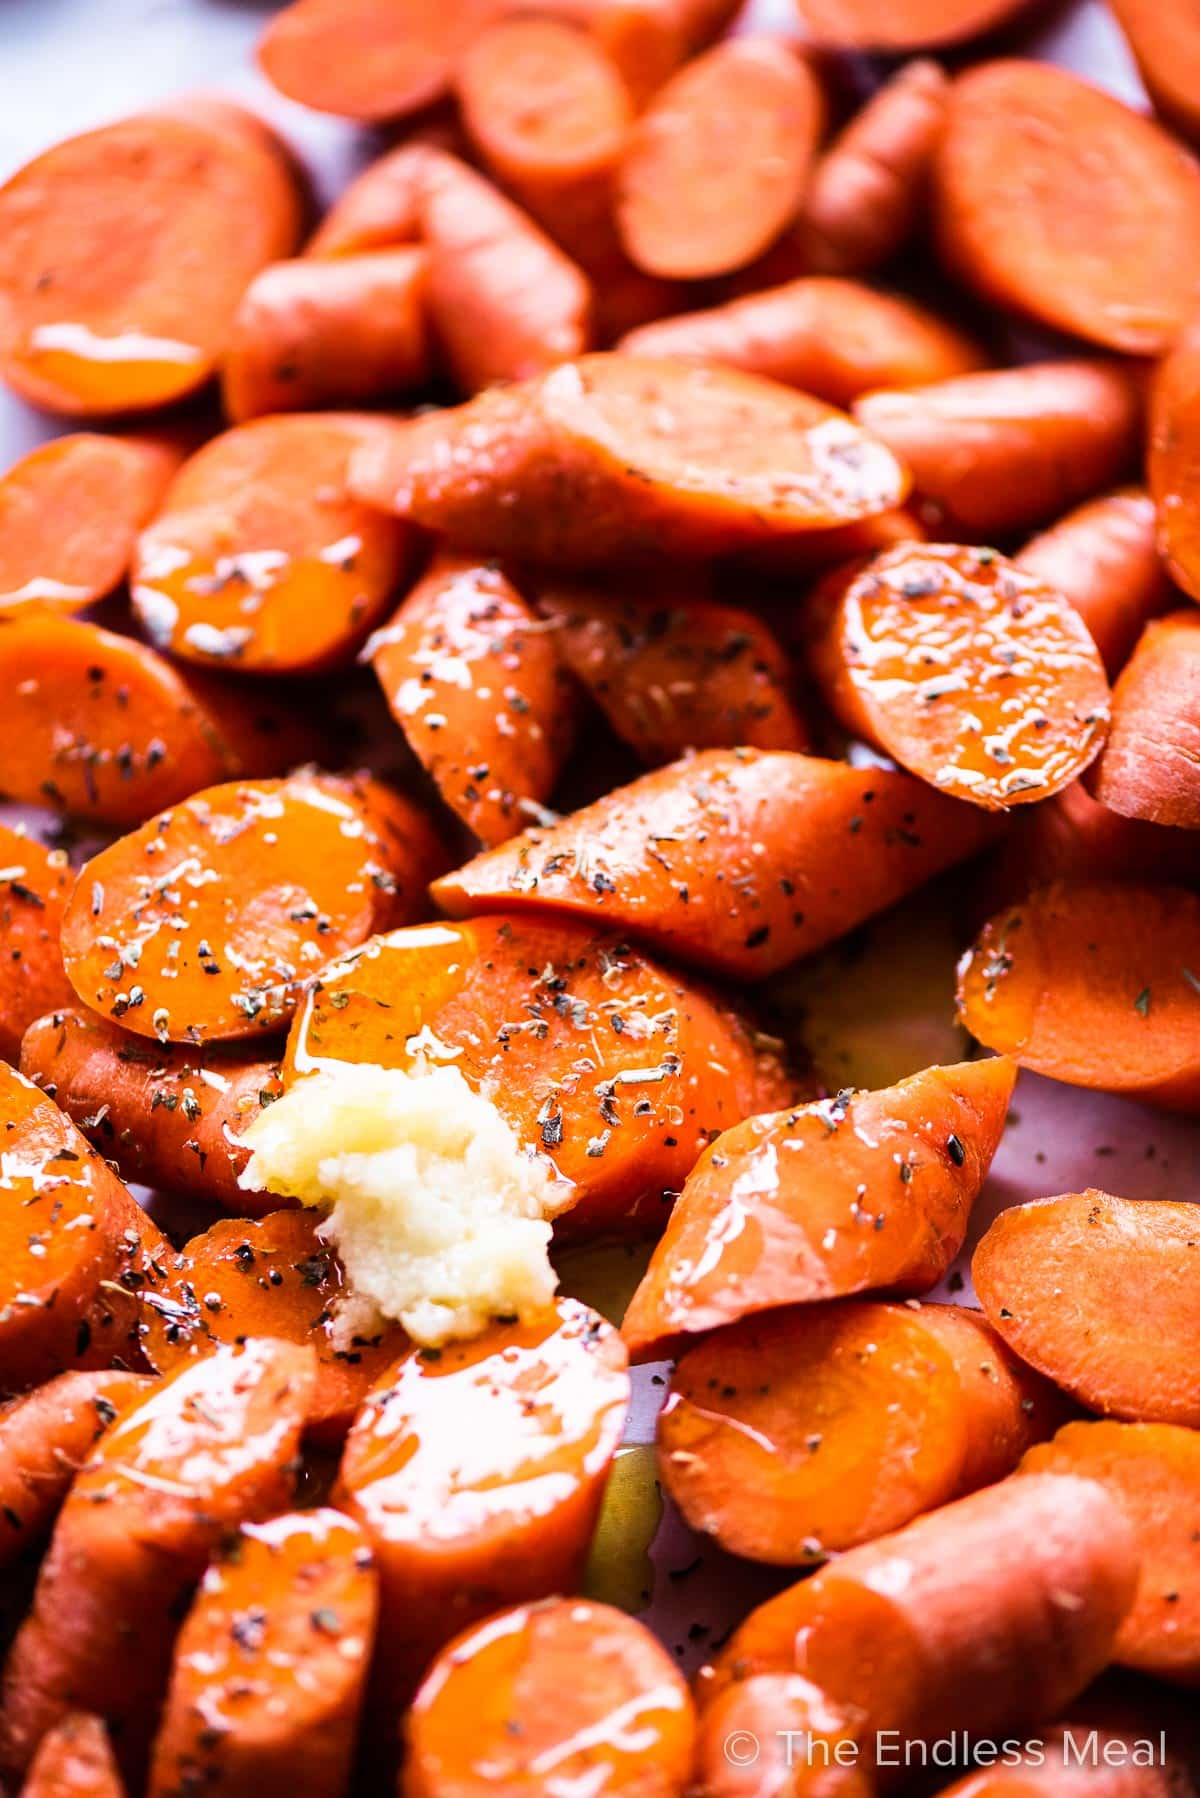 Sliced carrots on a baking sheet with spices and garlic.